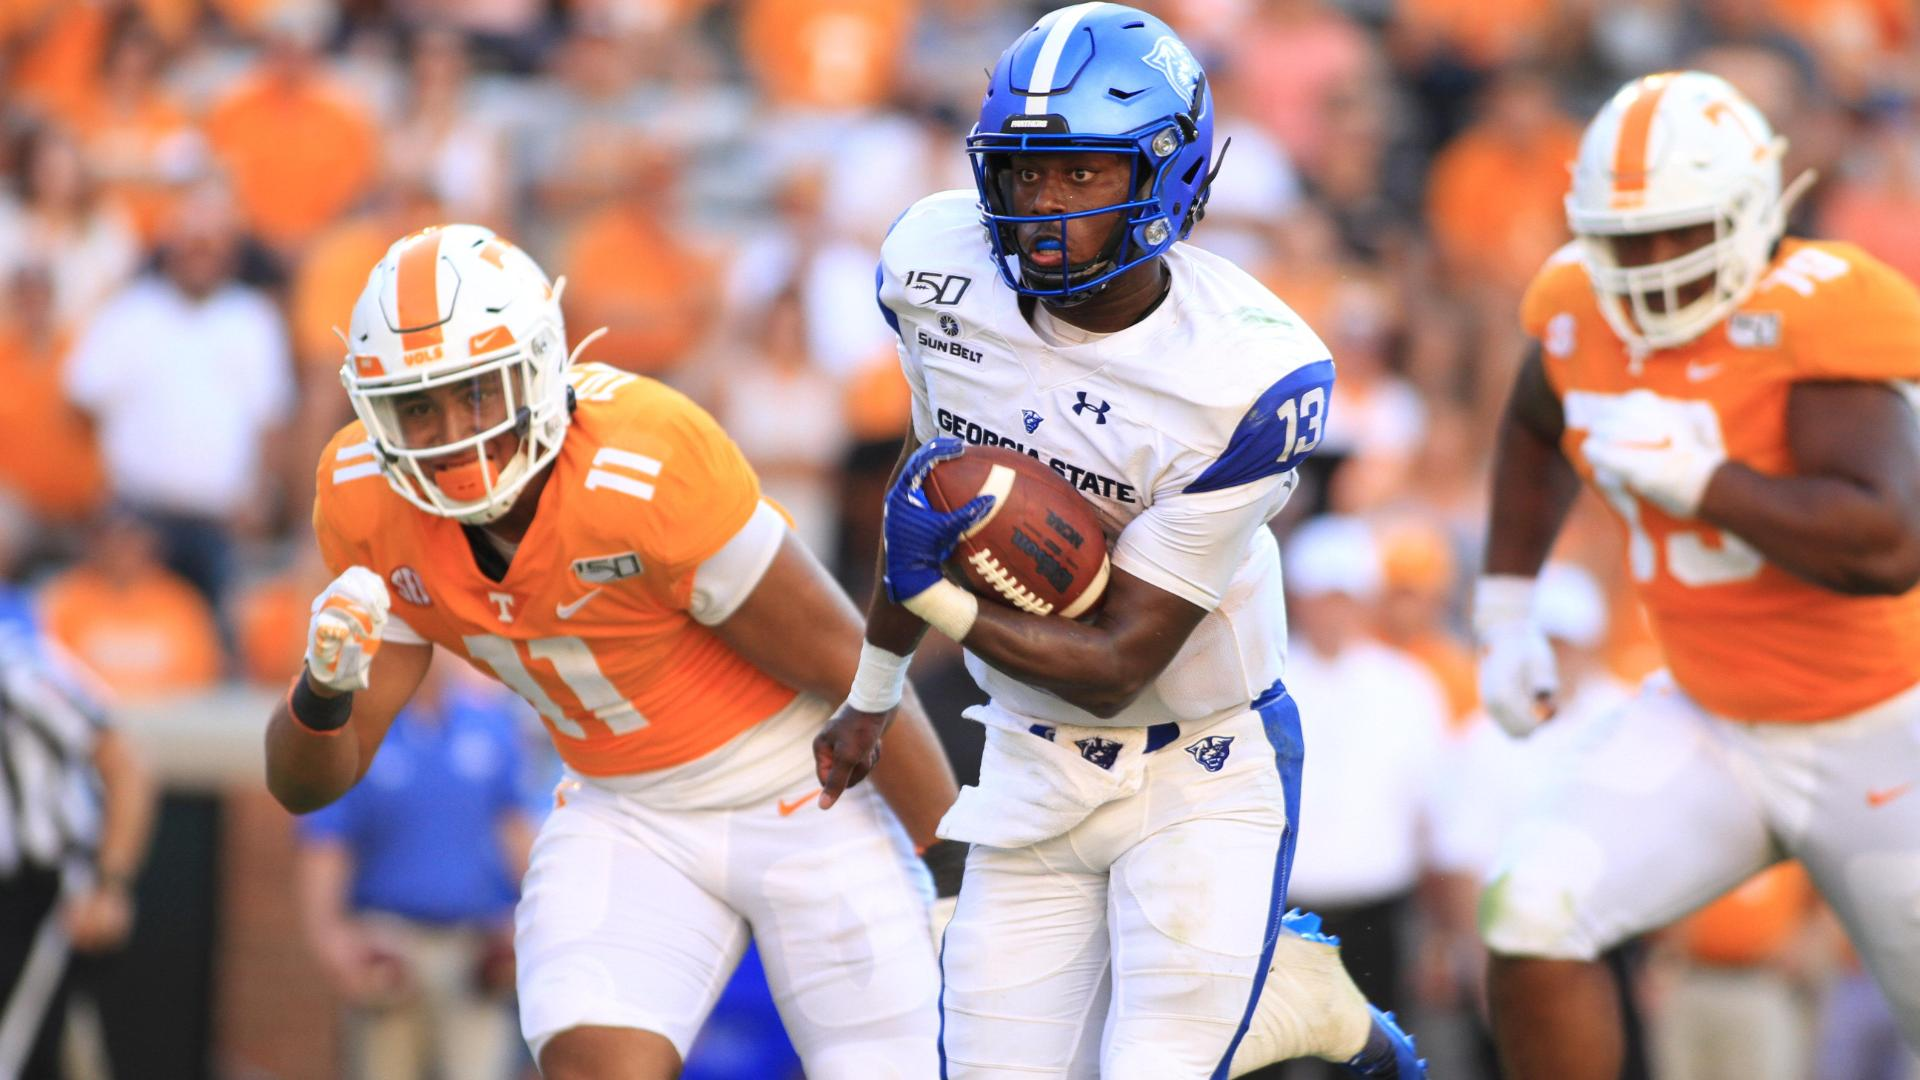 Georgia State's late TD secures upset of Tennessee